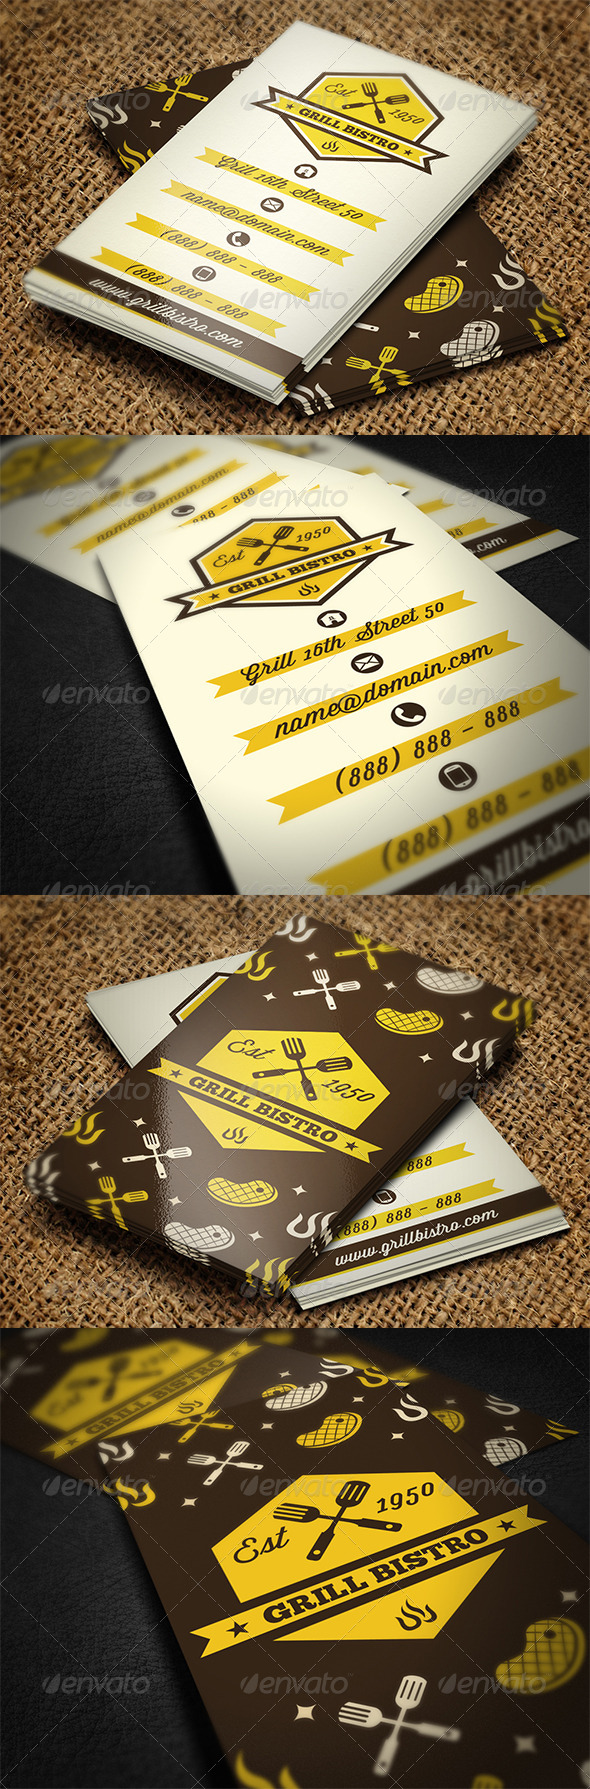 GraphicRiver Grill Restaurant Business Card 5578467